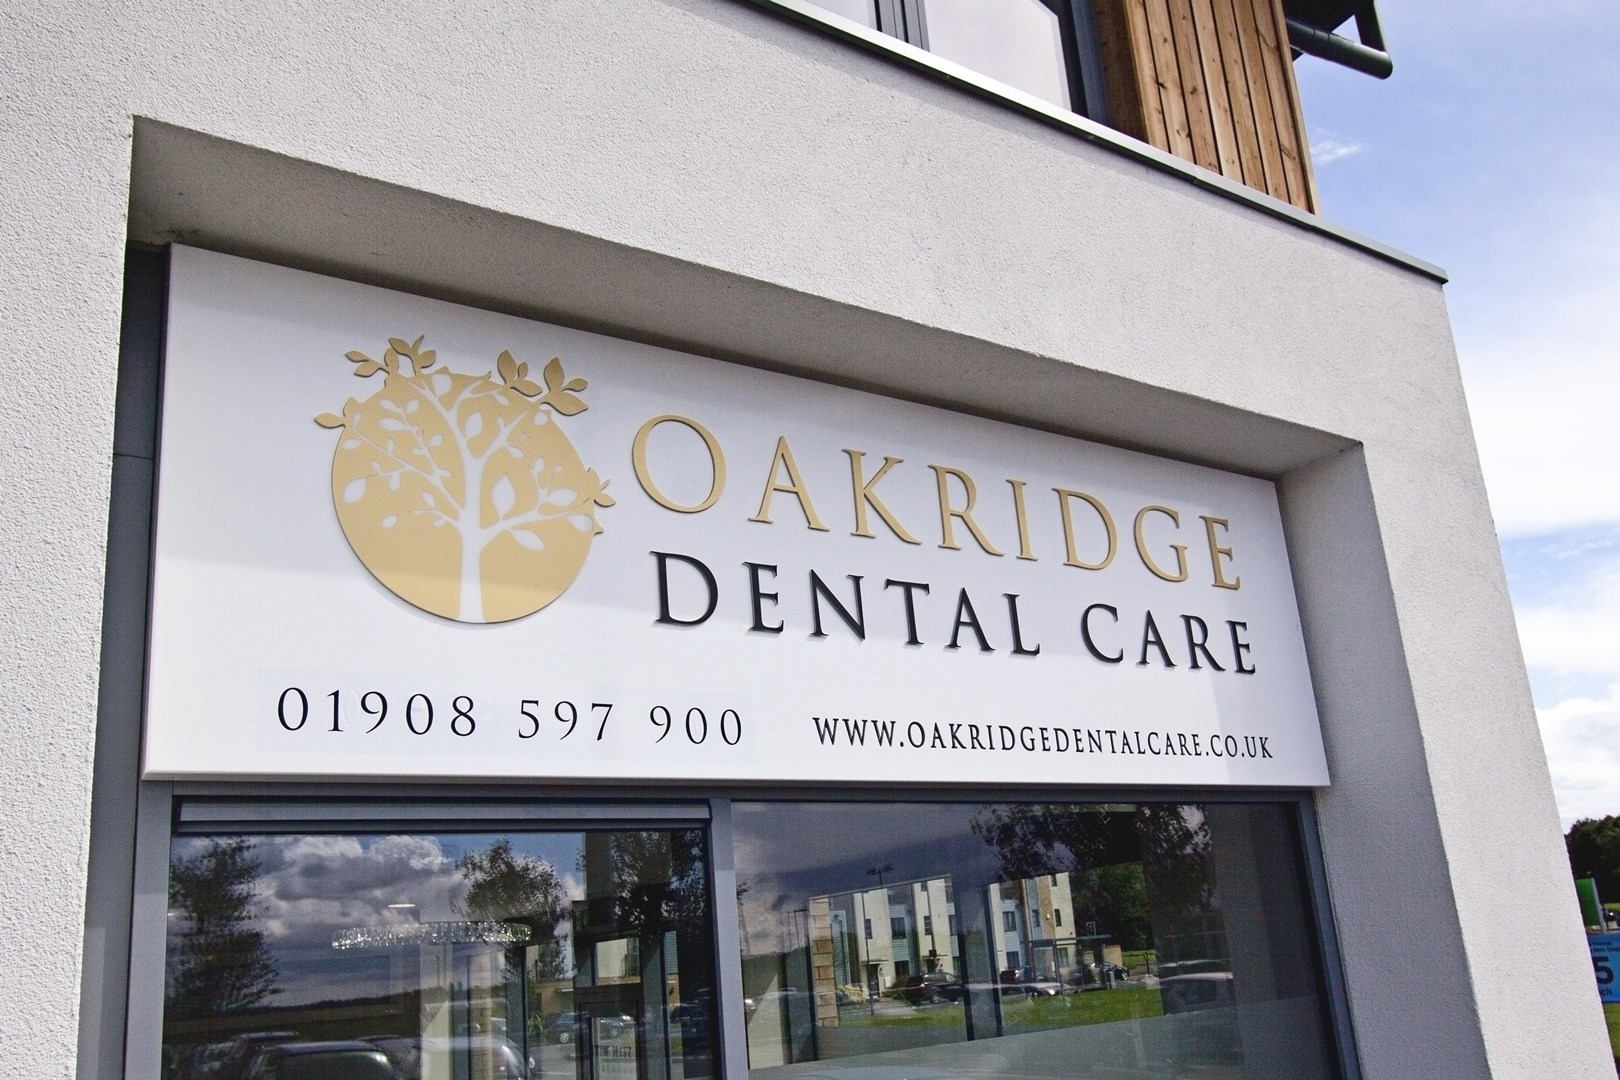 Oakridge Dental Care Outside